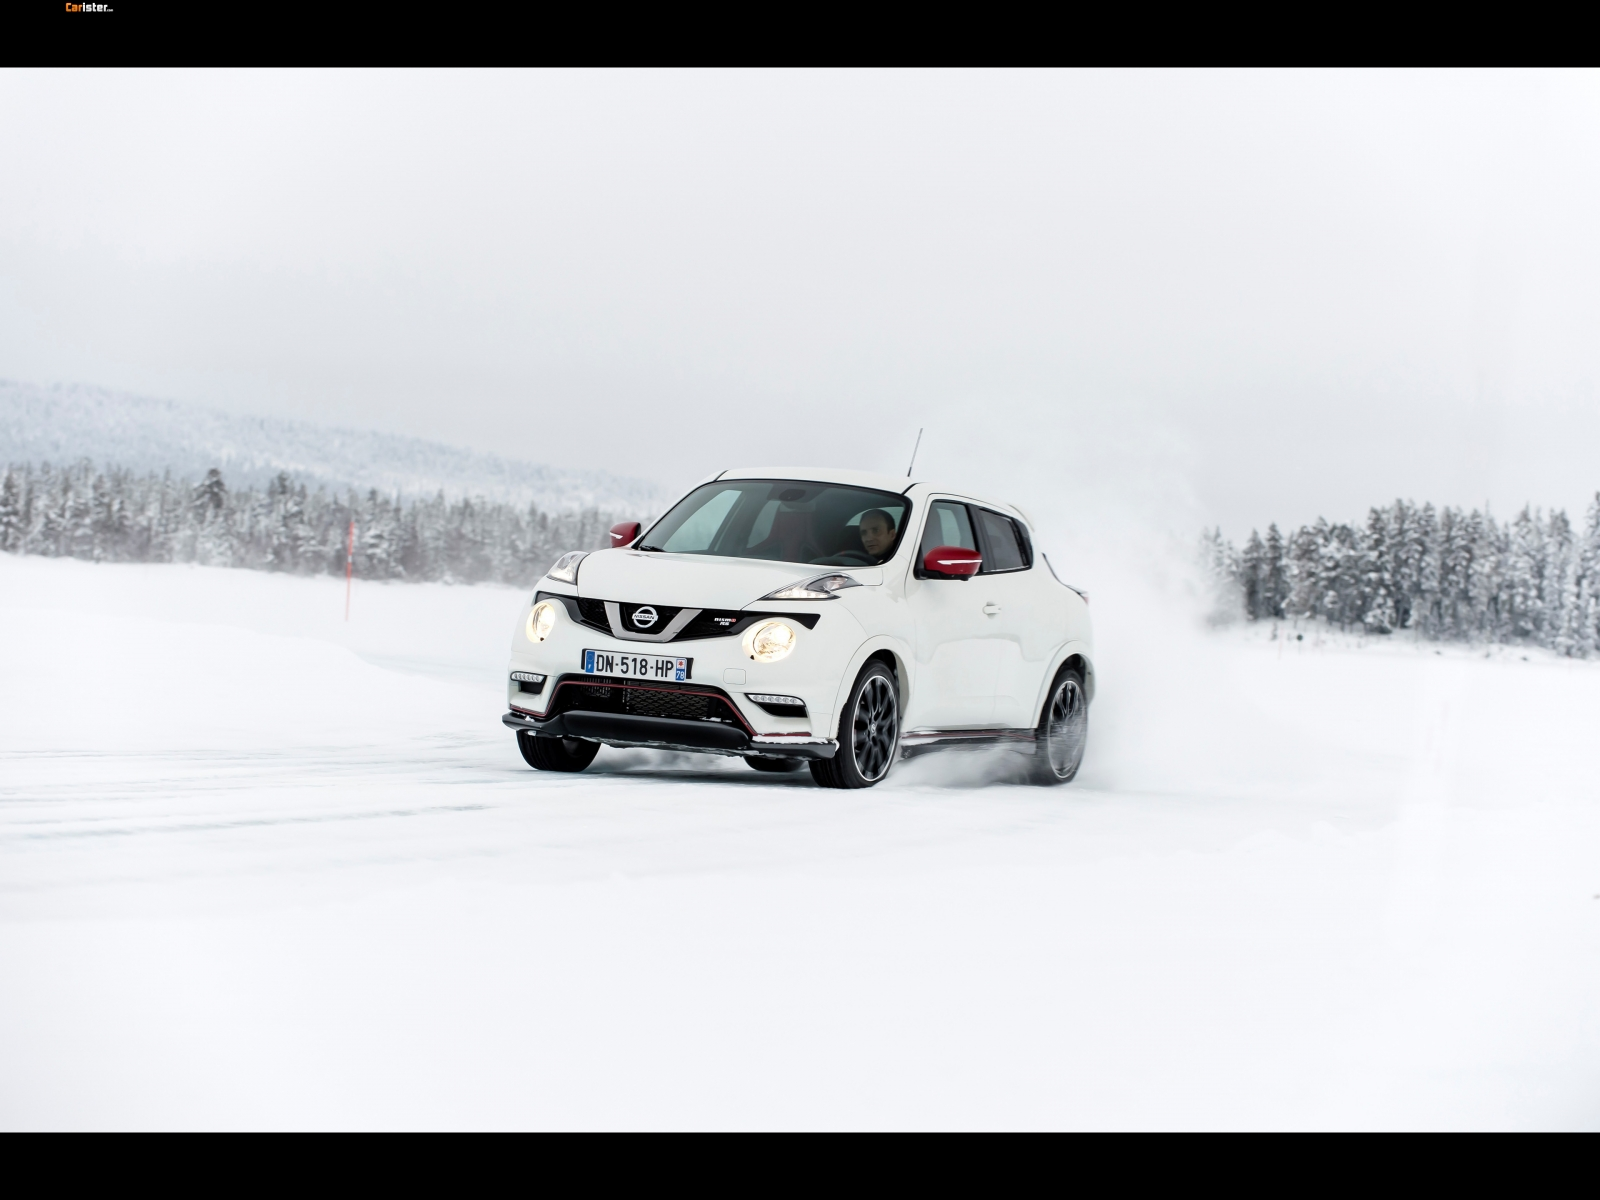 Nissan Juke Nismo RS 2015 - Photo 76 - Taille: 1600x1200